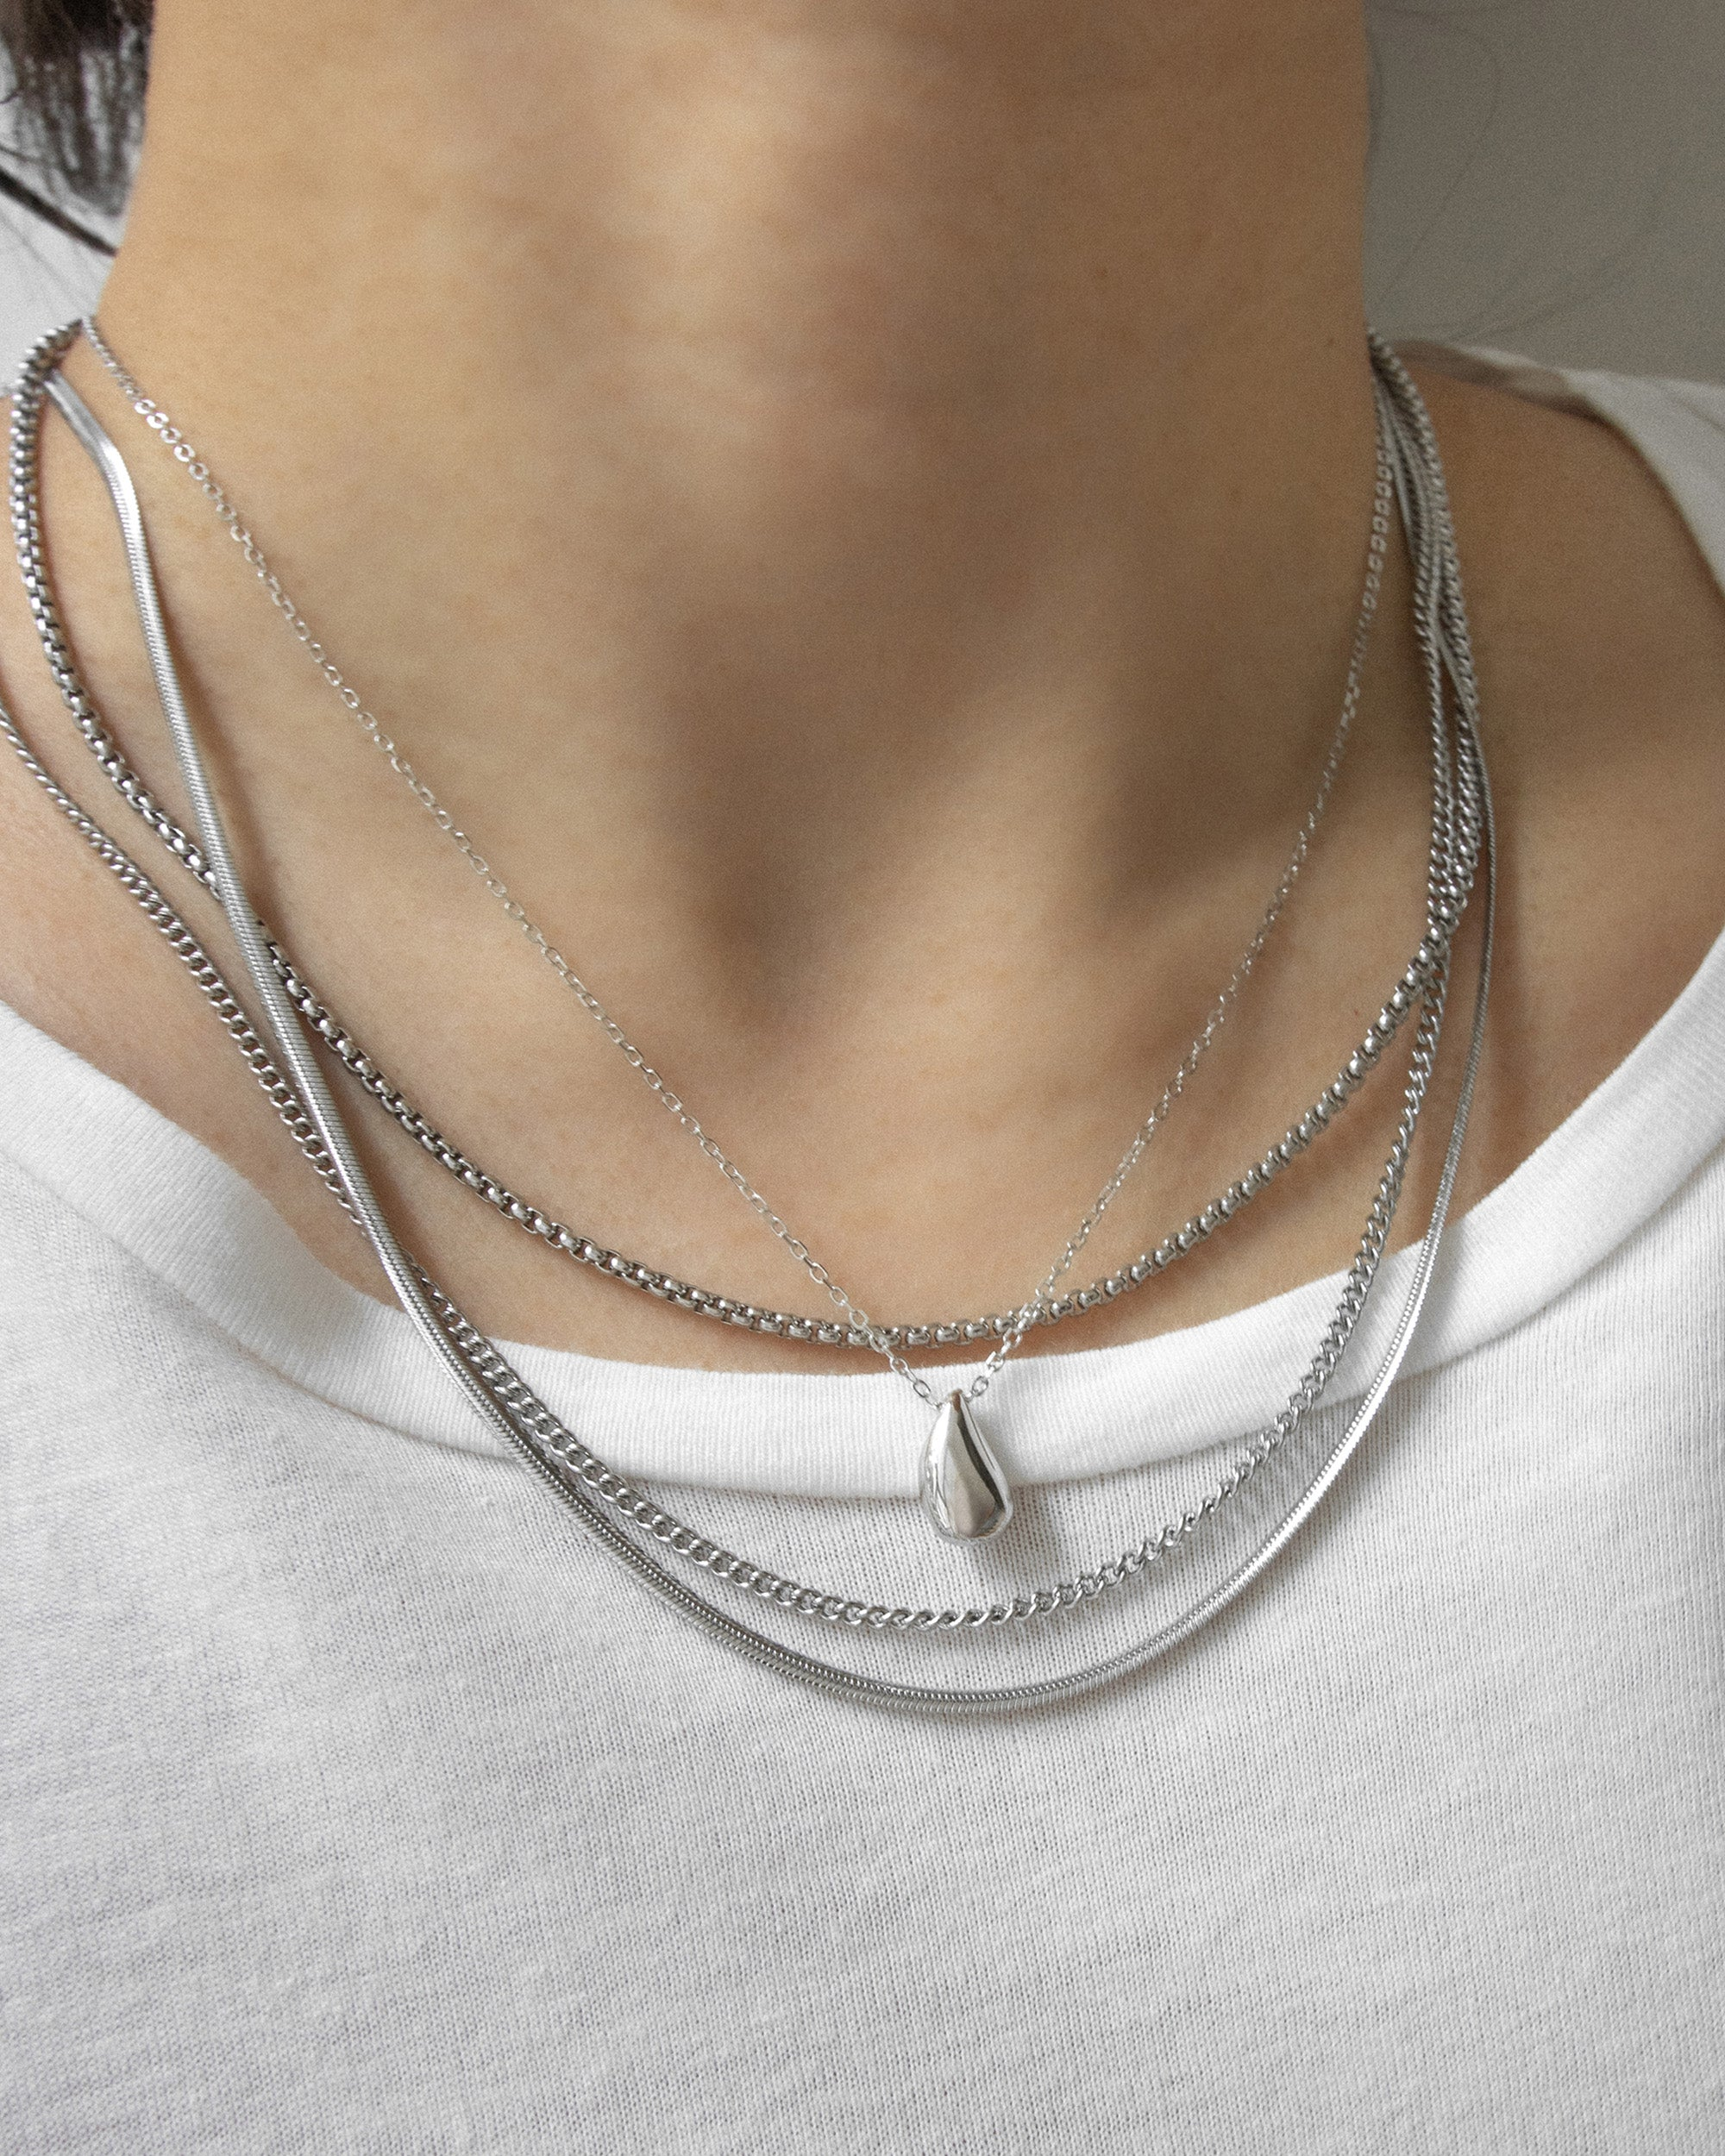 Silver teardrop pendant necklace anchors the neck stack for a cohesive look